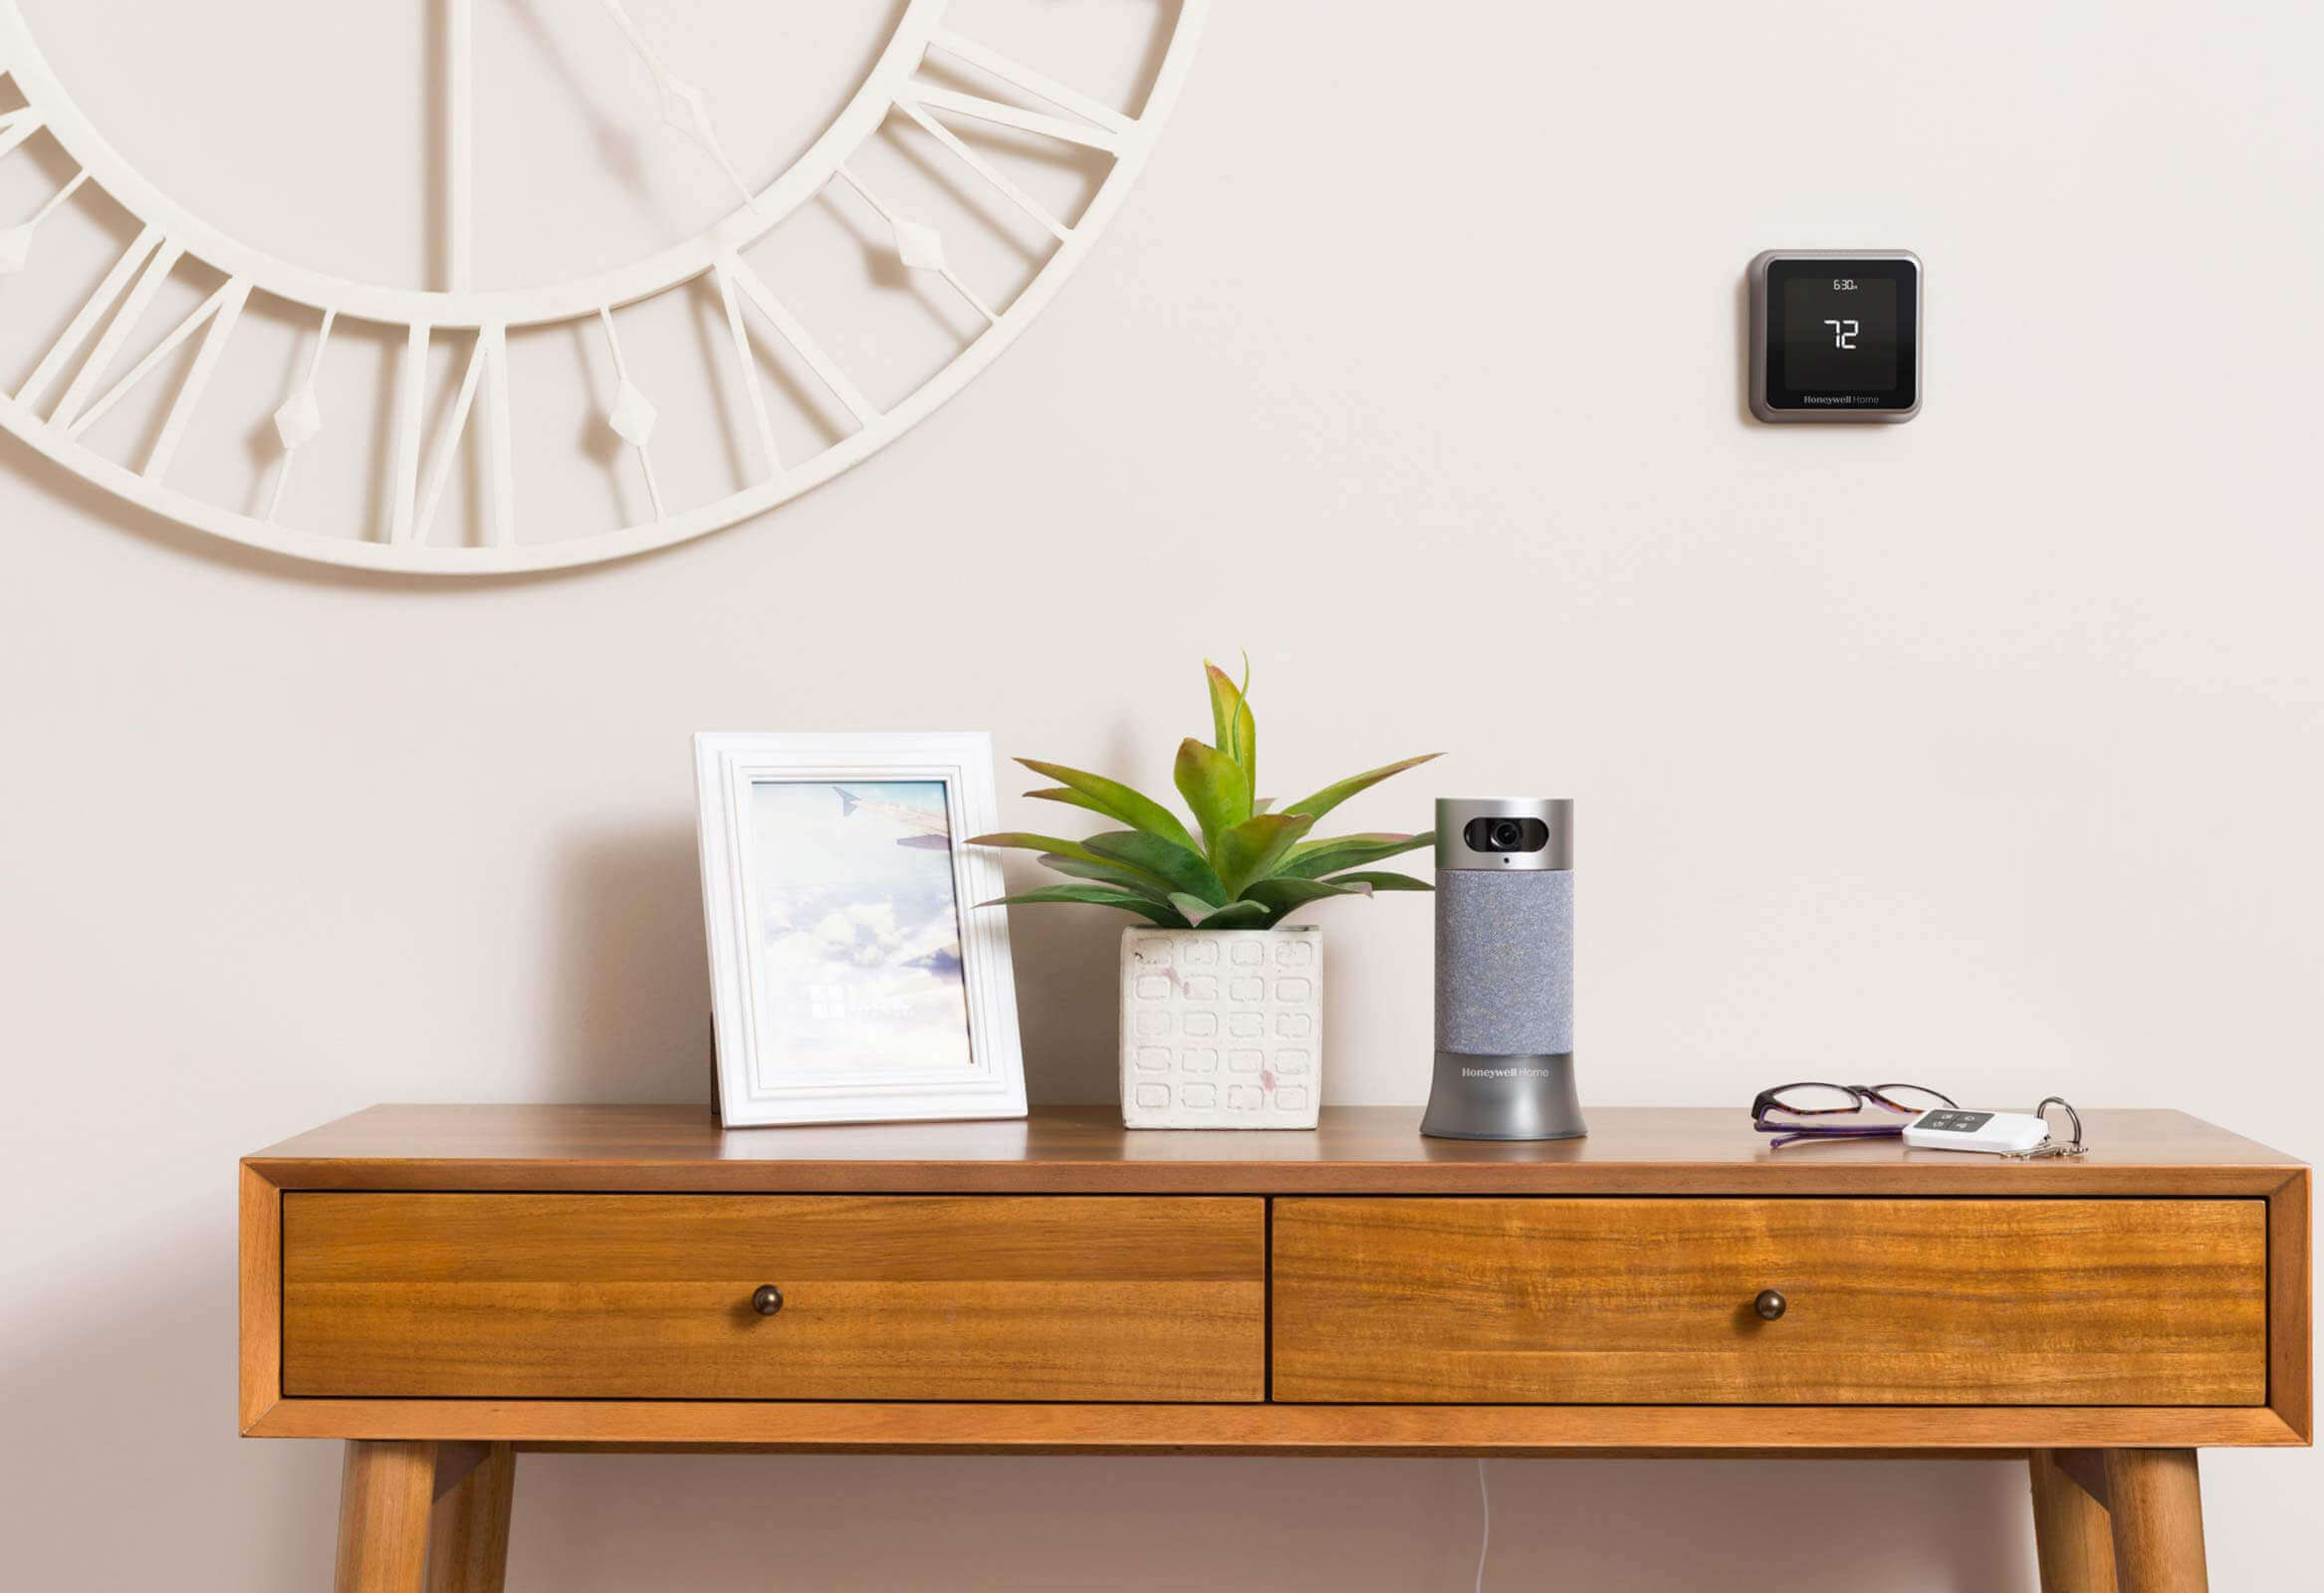 Download the app to connect your Honeywell Home connected devices from a single Honeywell Home account.